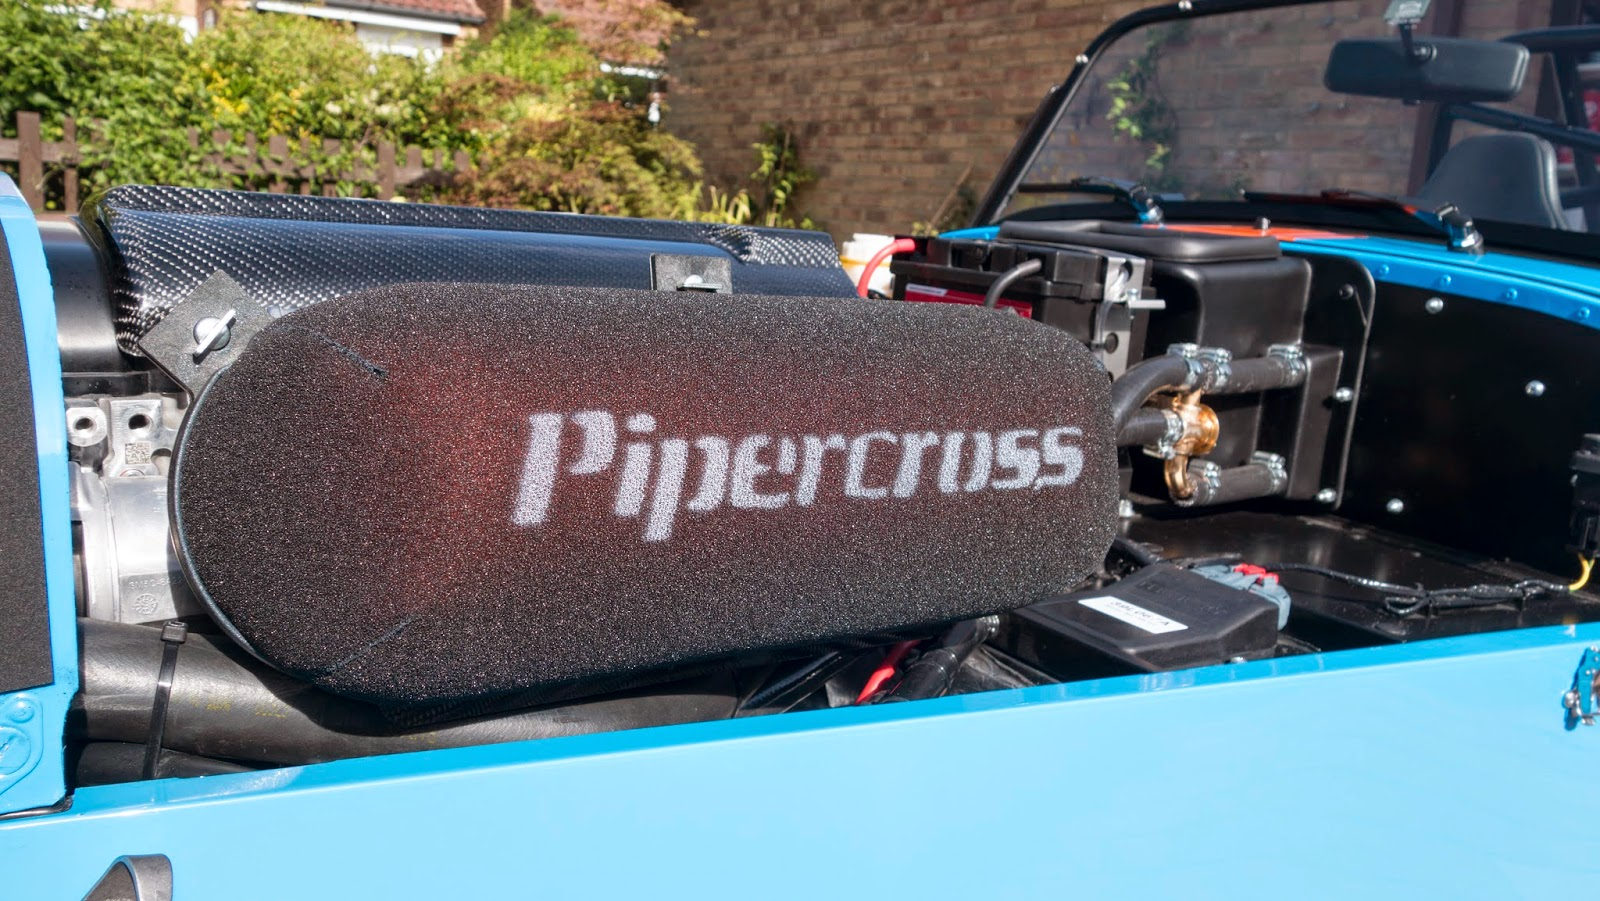 R500 with piper cross air filter